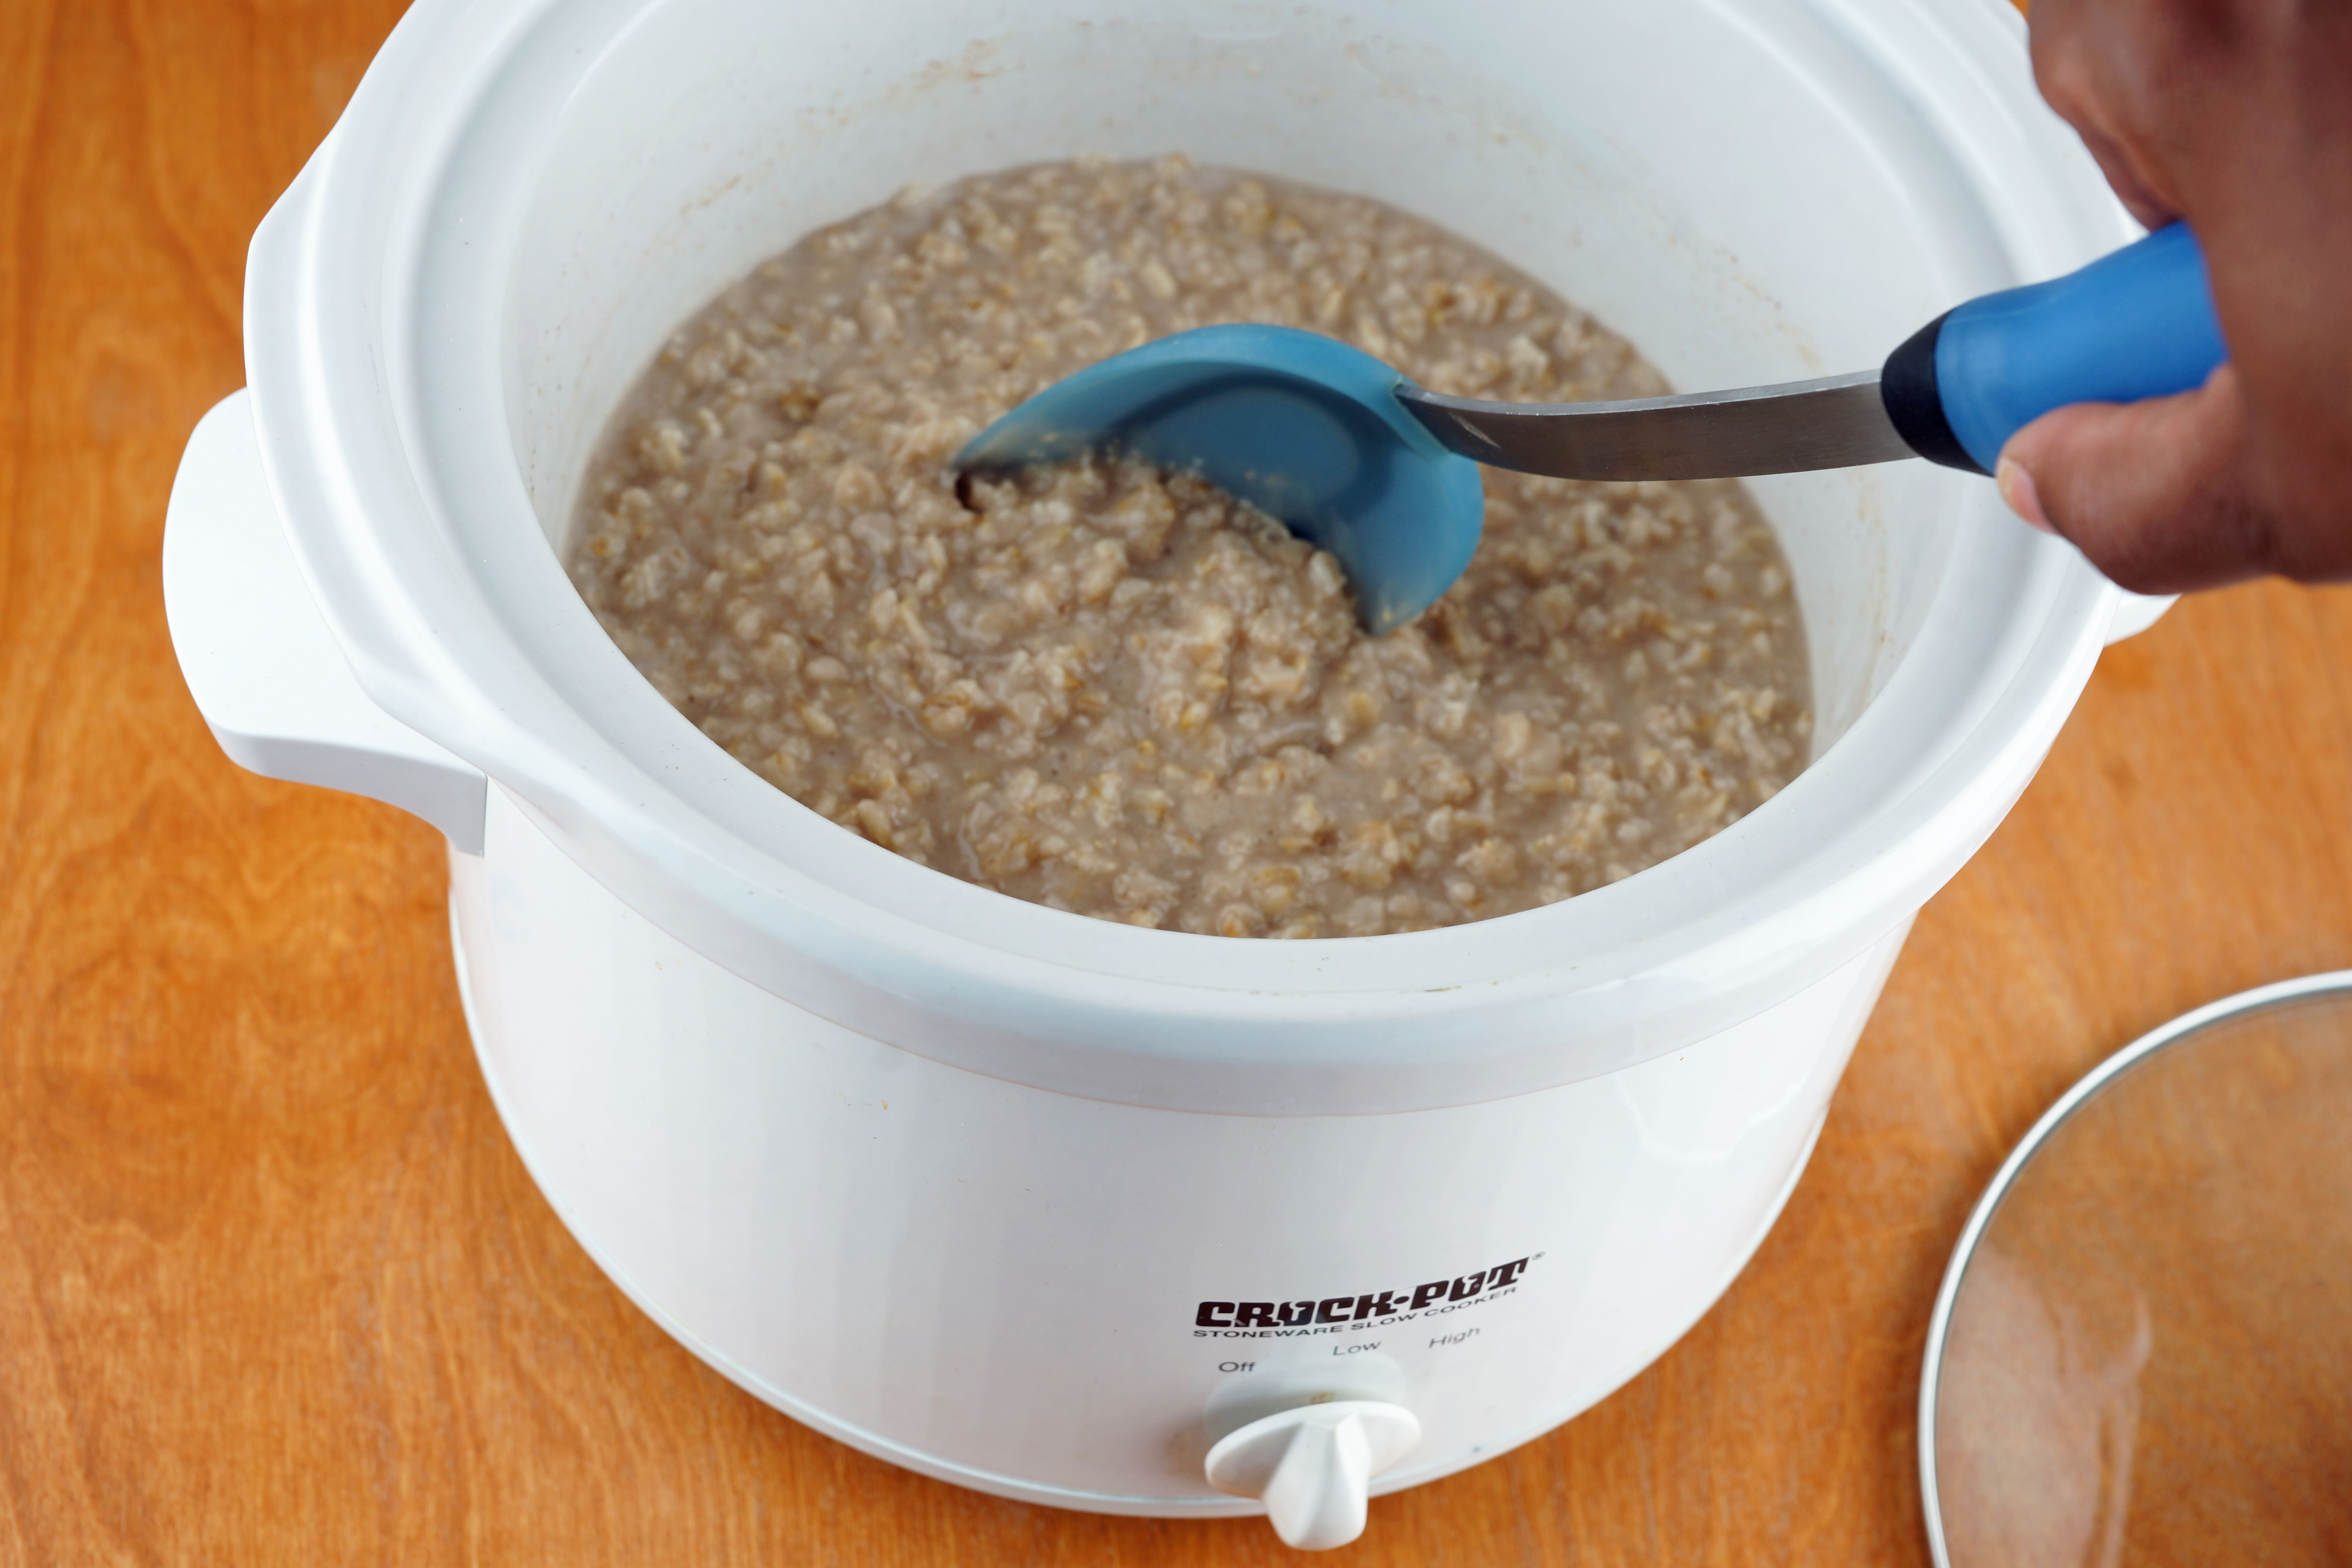 How to cook rolled oats in a crockpot